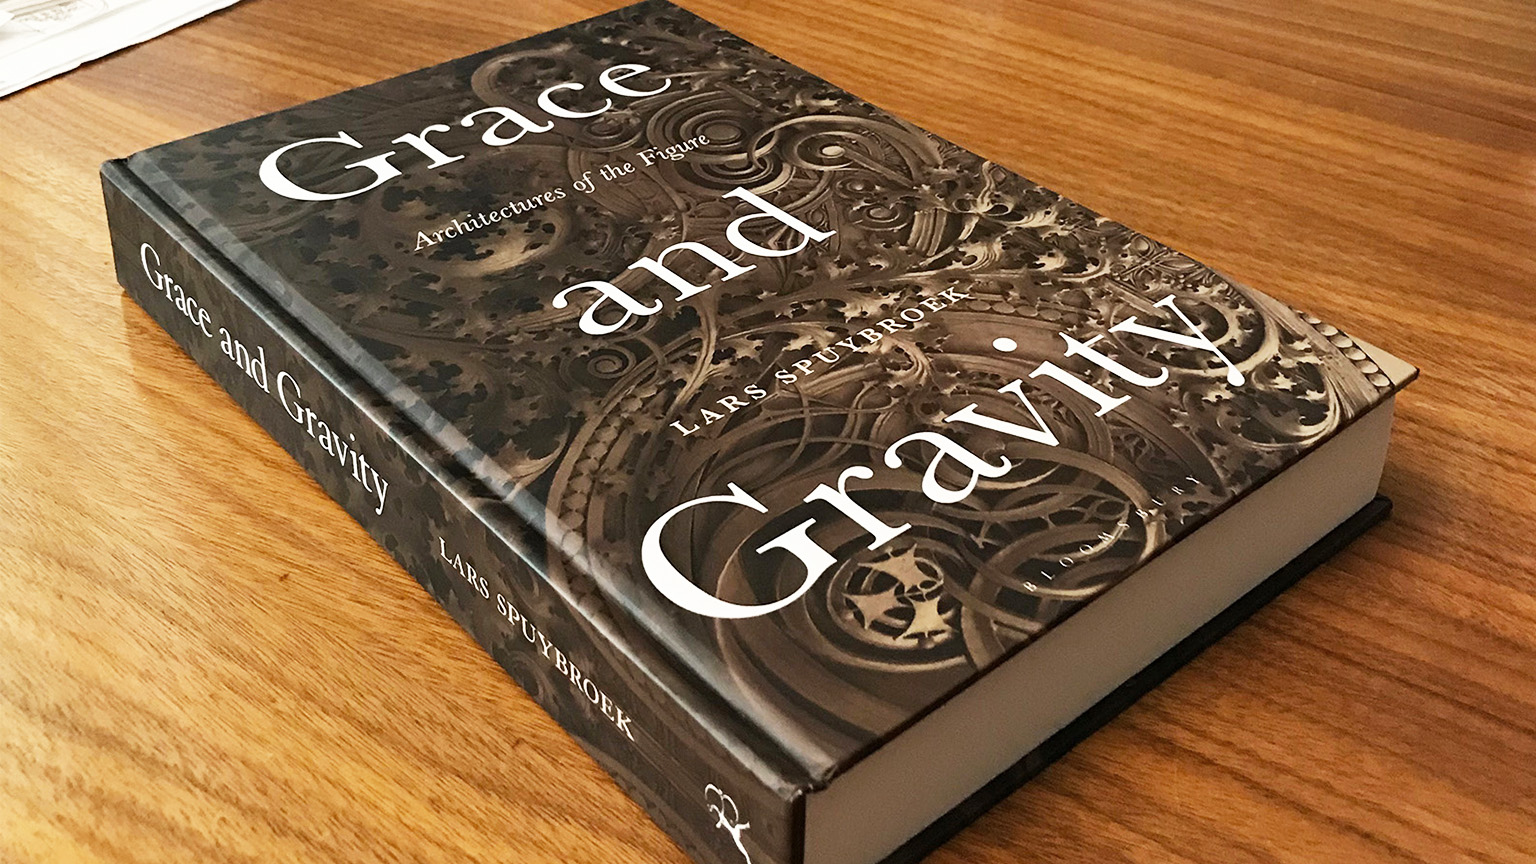 A copy of the book Grace and Gravity by Professor Lars Spuybroek sitting on a desk.